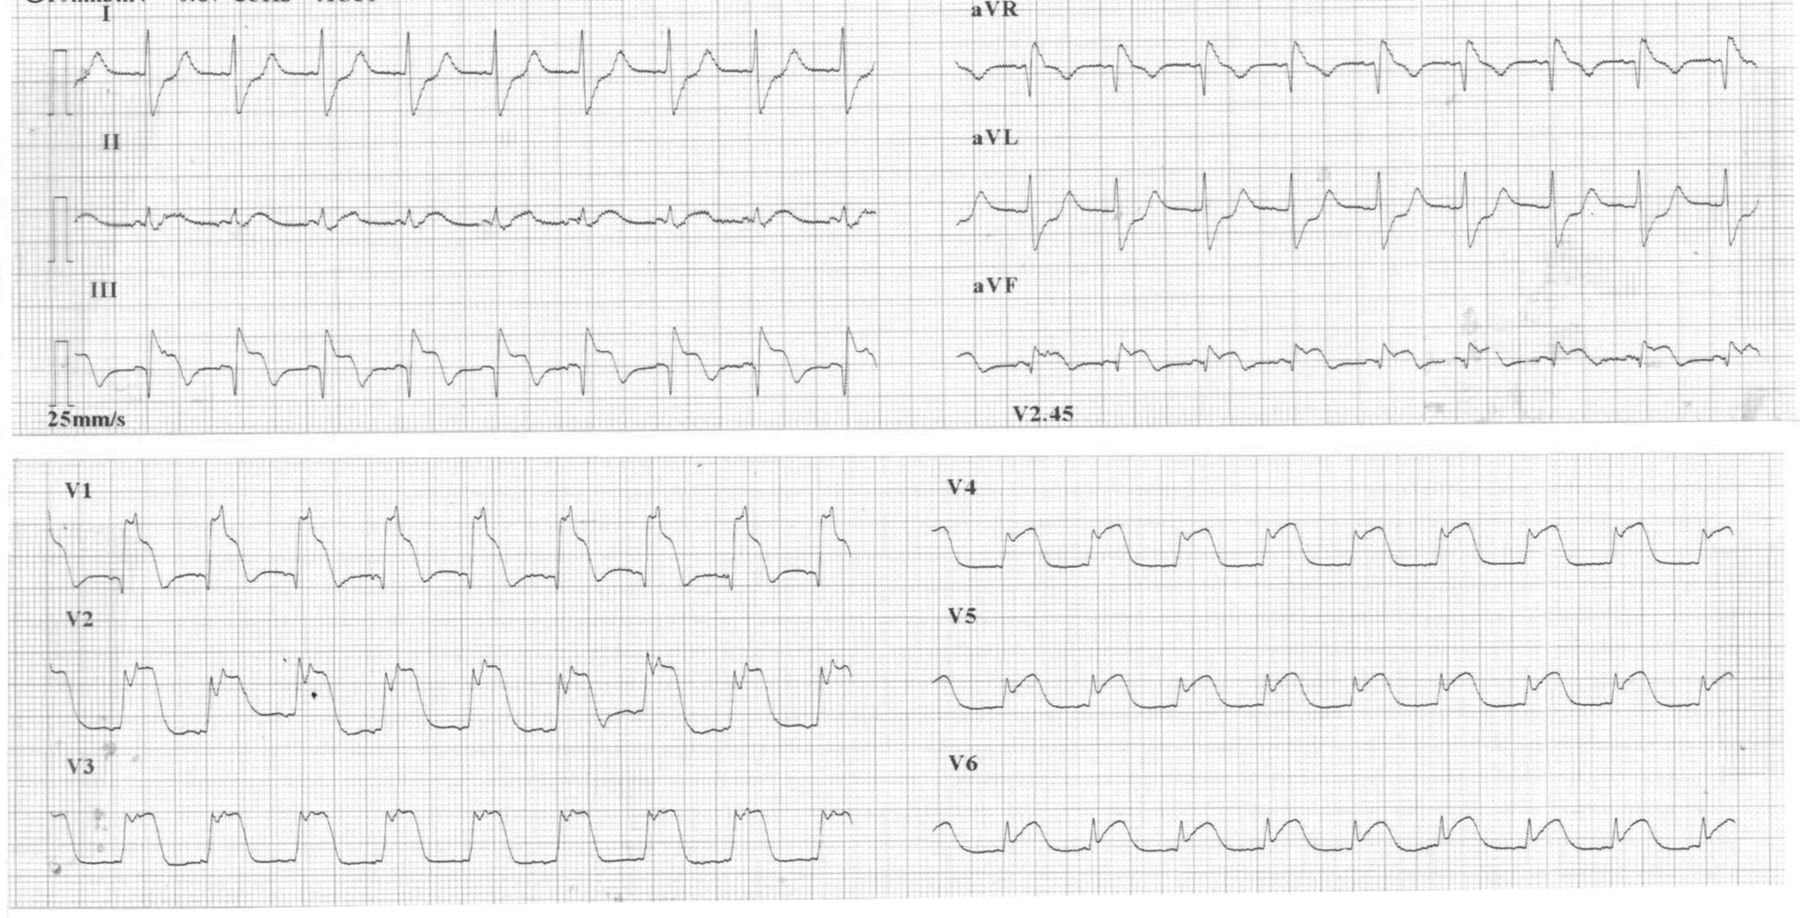 An Unusual Complication During Bronchoscopy Hypotension Global St Segment Elevation And Acute